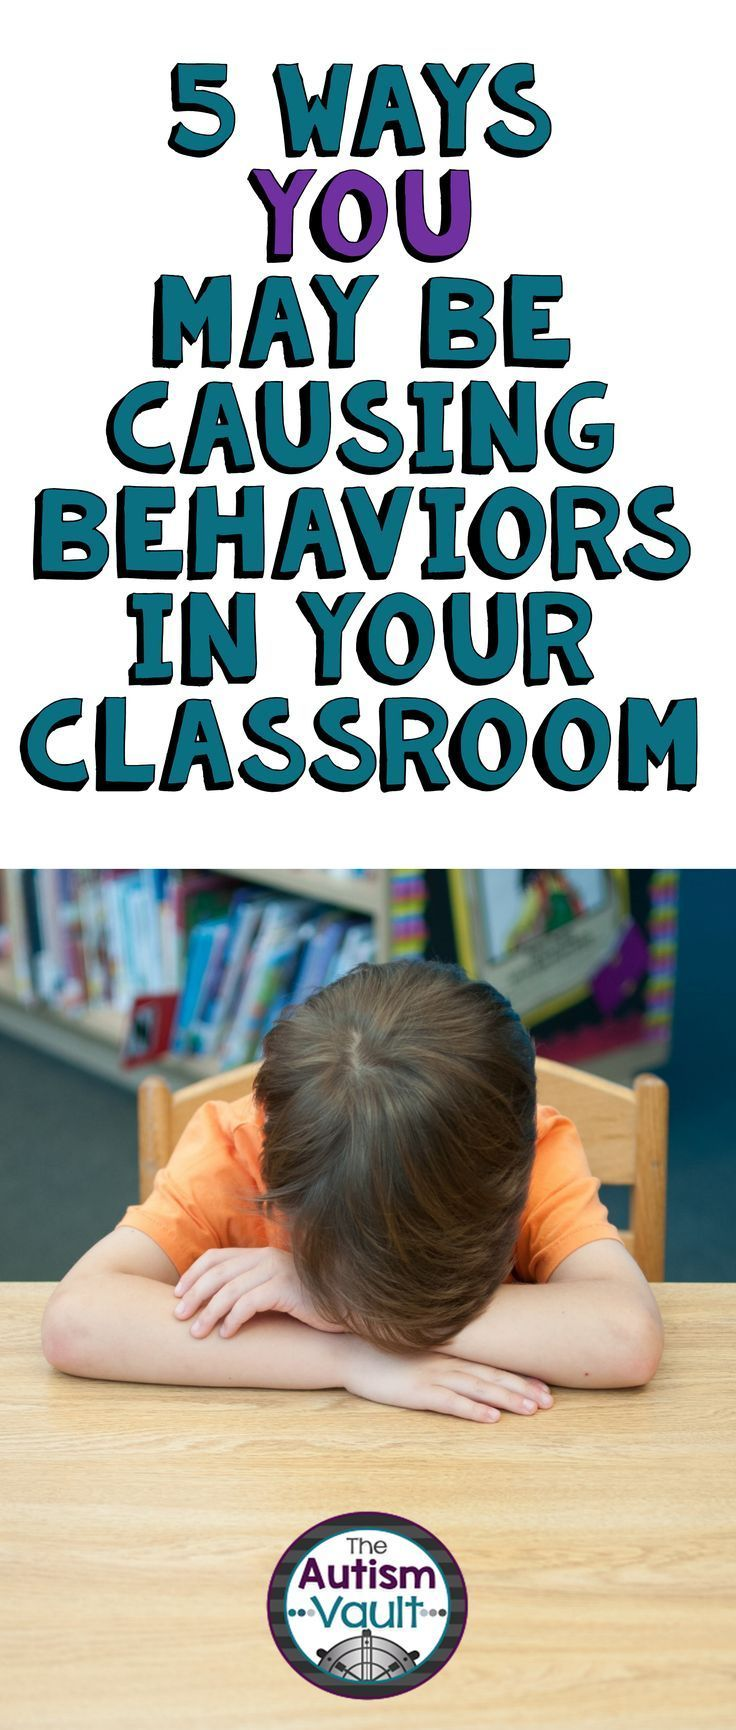 Our classrooms may be the cause for behaviors more than we realize.  Read about some considerations to keep in mind when teaching in an autism classroom.